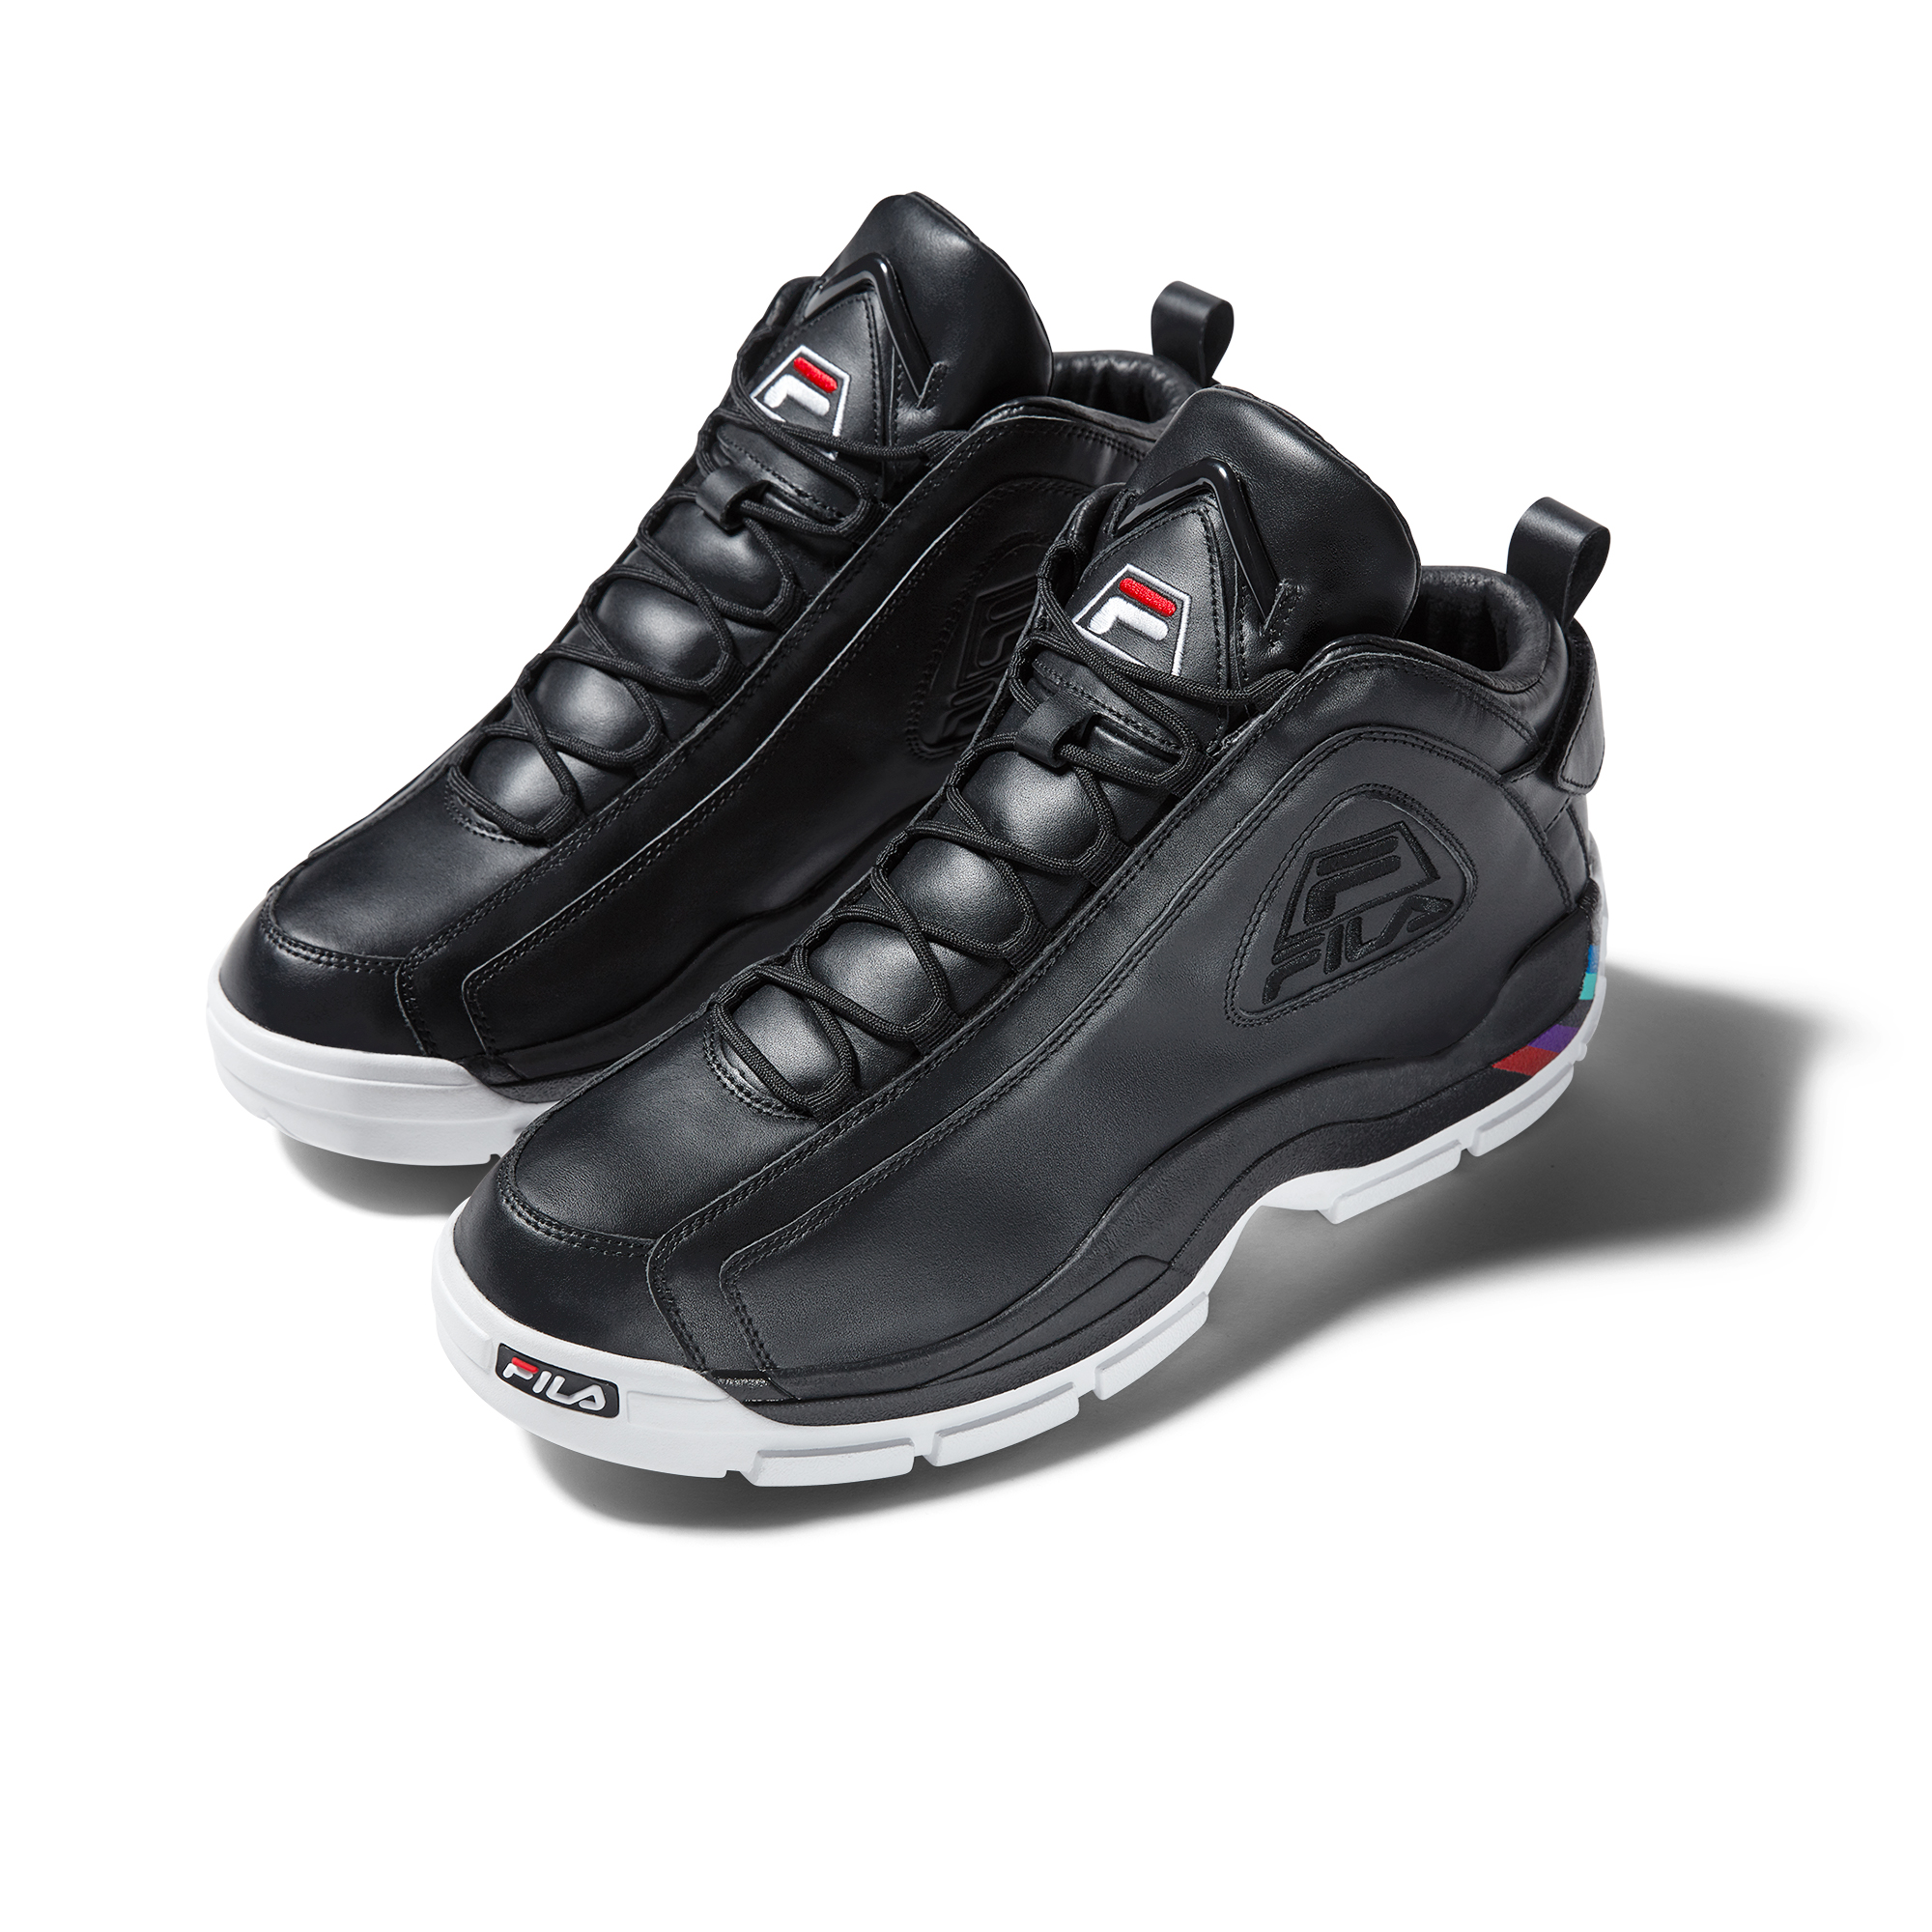 Fila grant hill 2 hall of fame black